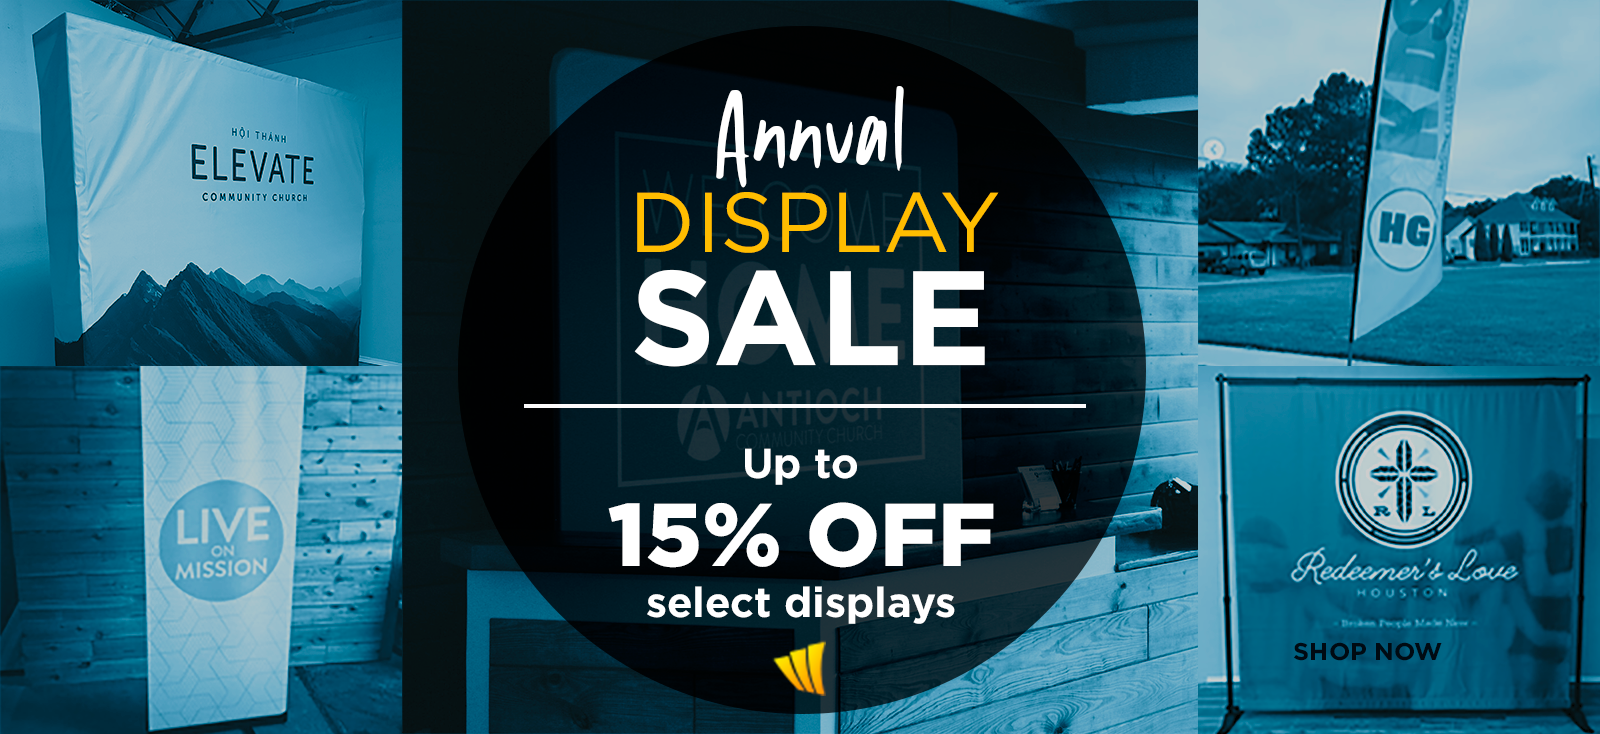 ChurchBanners Annual Display Sale - Save up to 15% Off